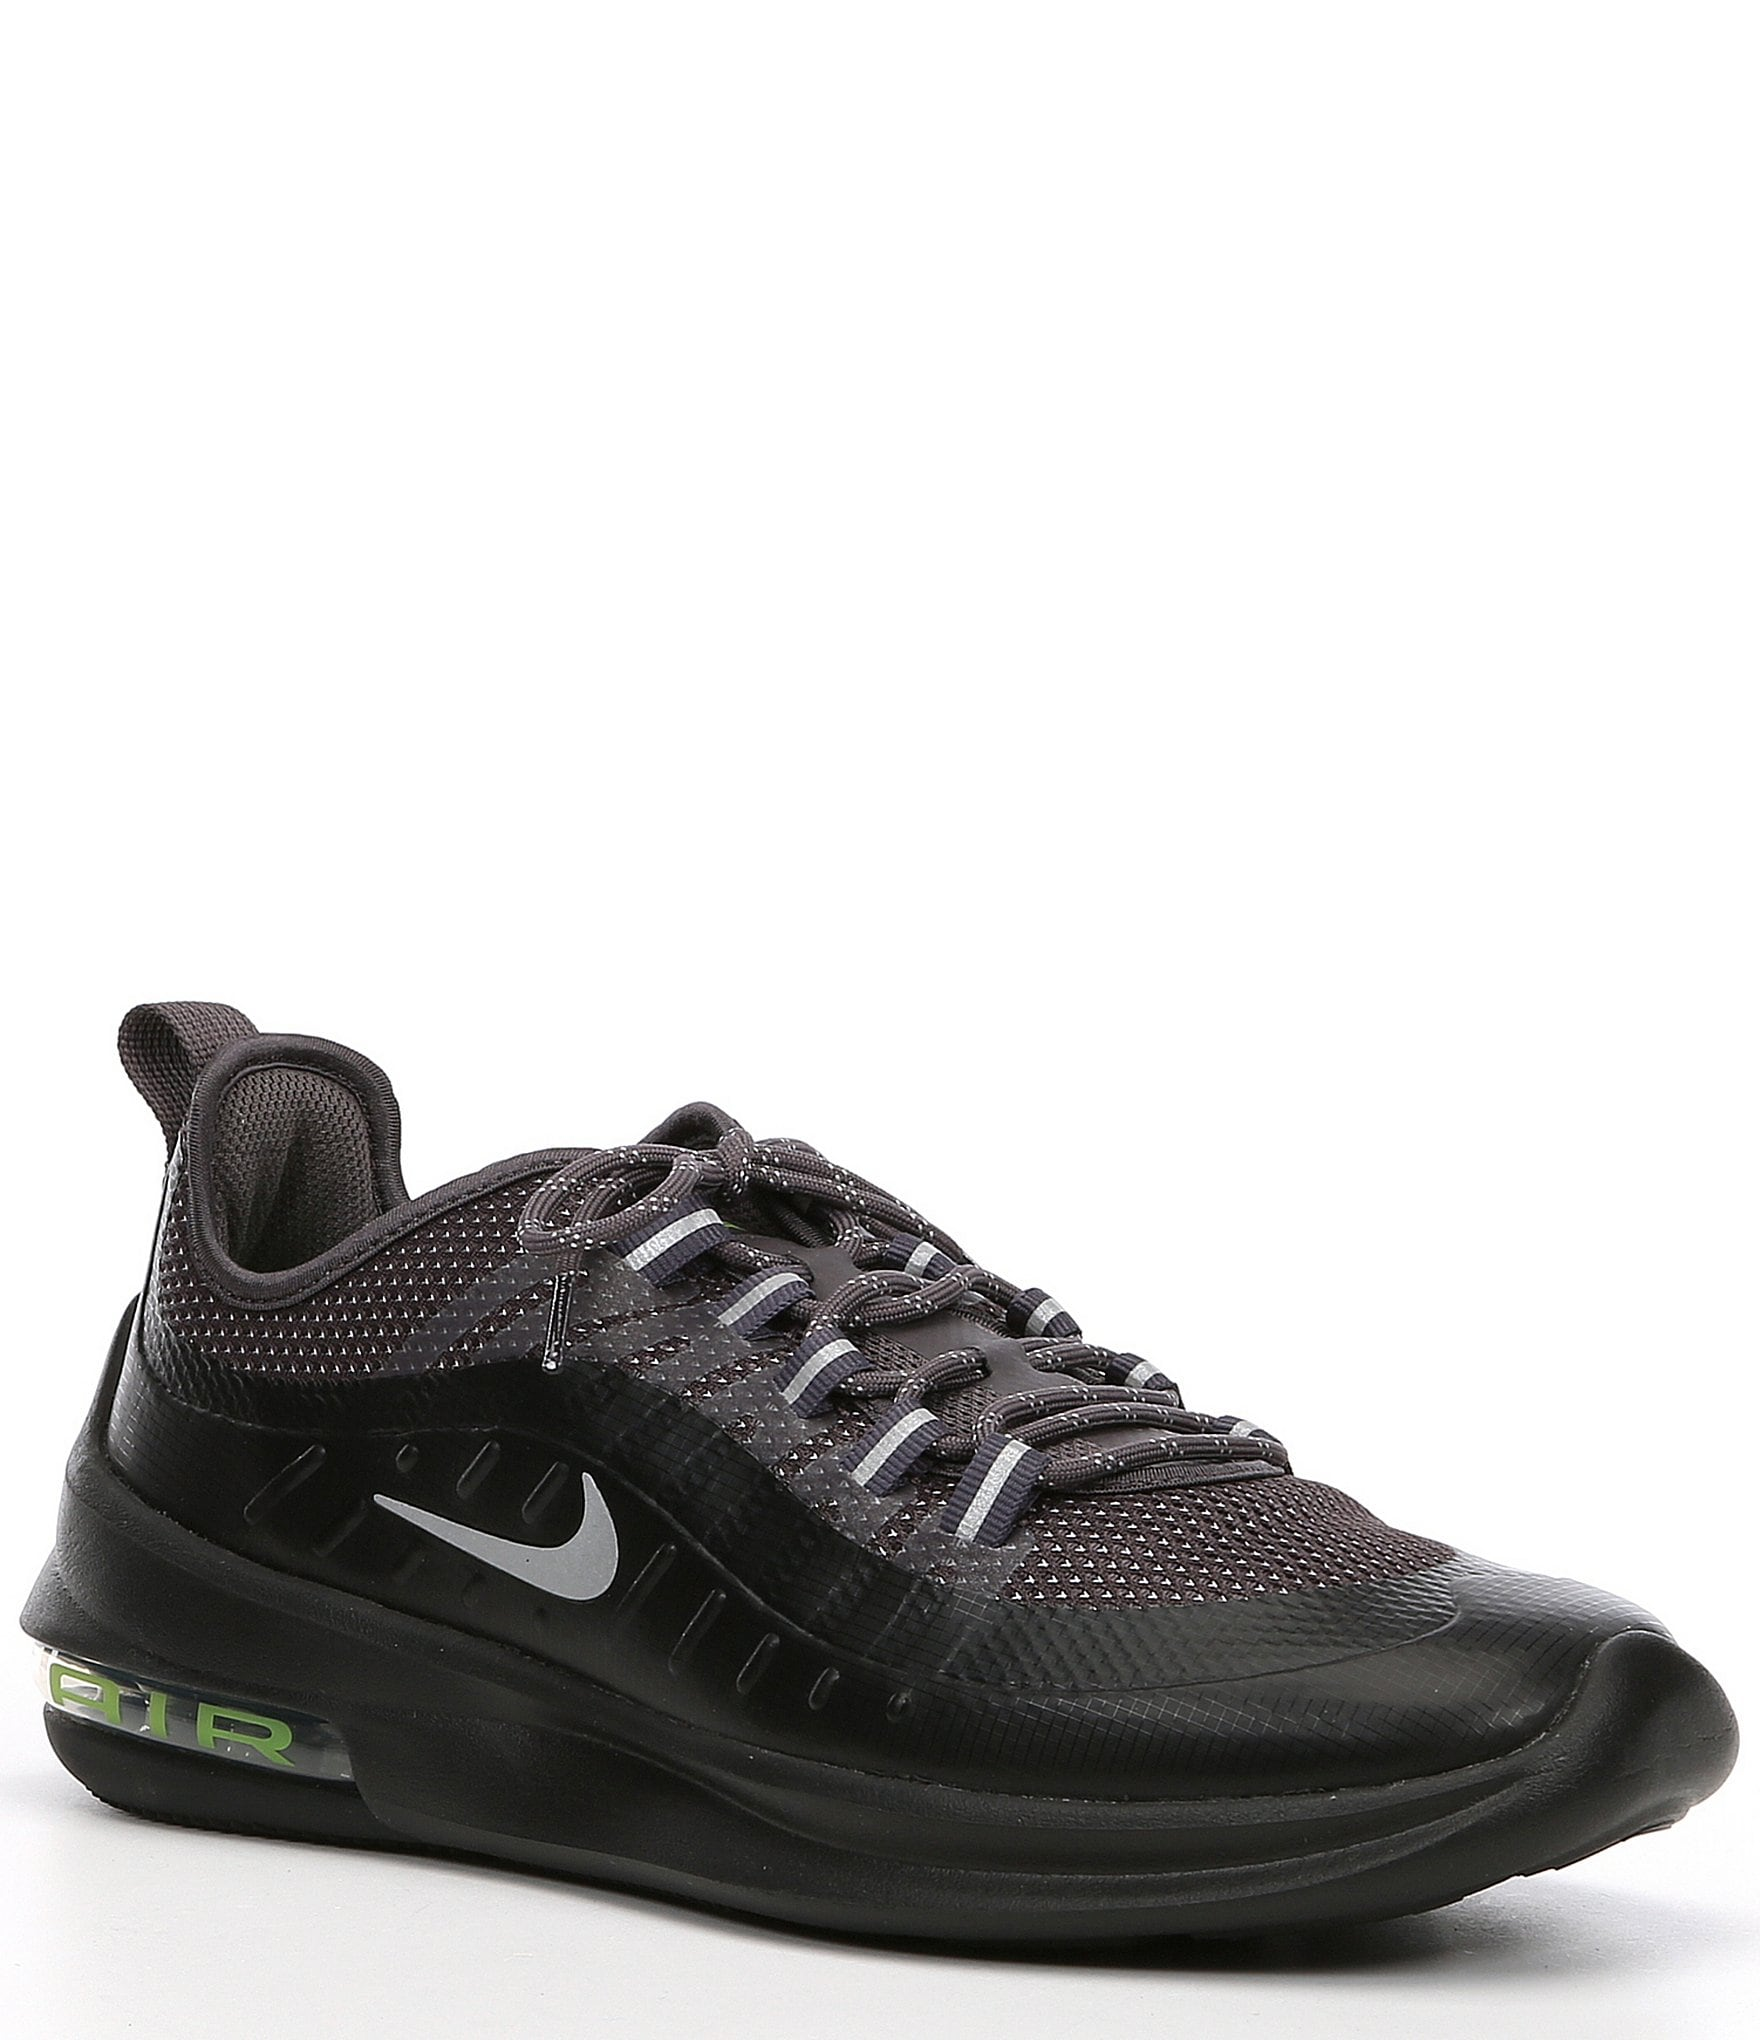 Nike Men's Air Max Axis Premium Lifestyle Shoe | Dillard's